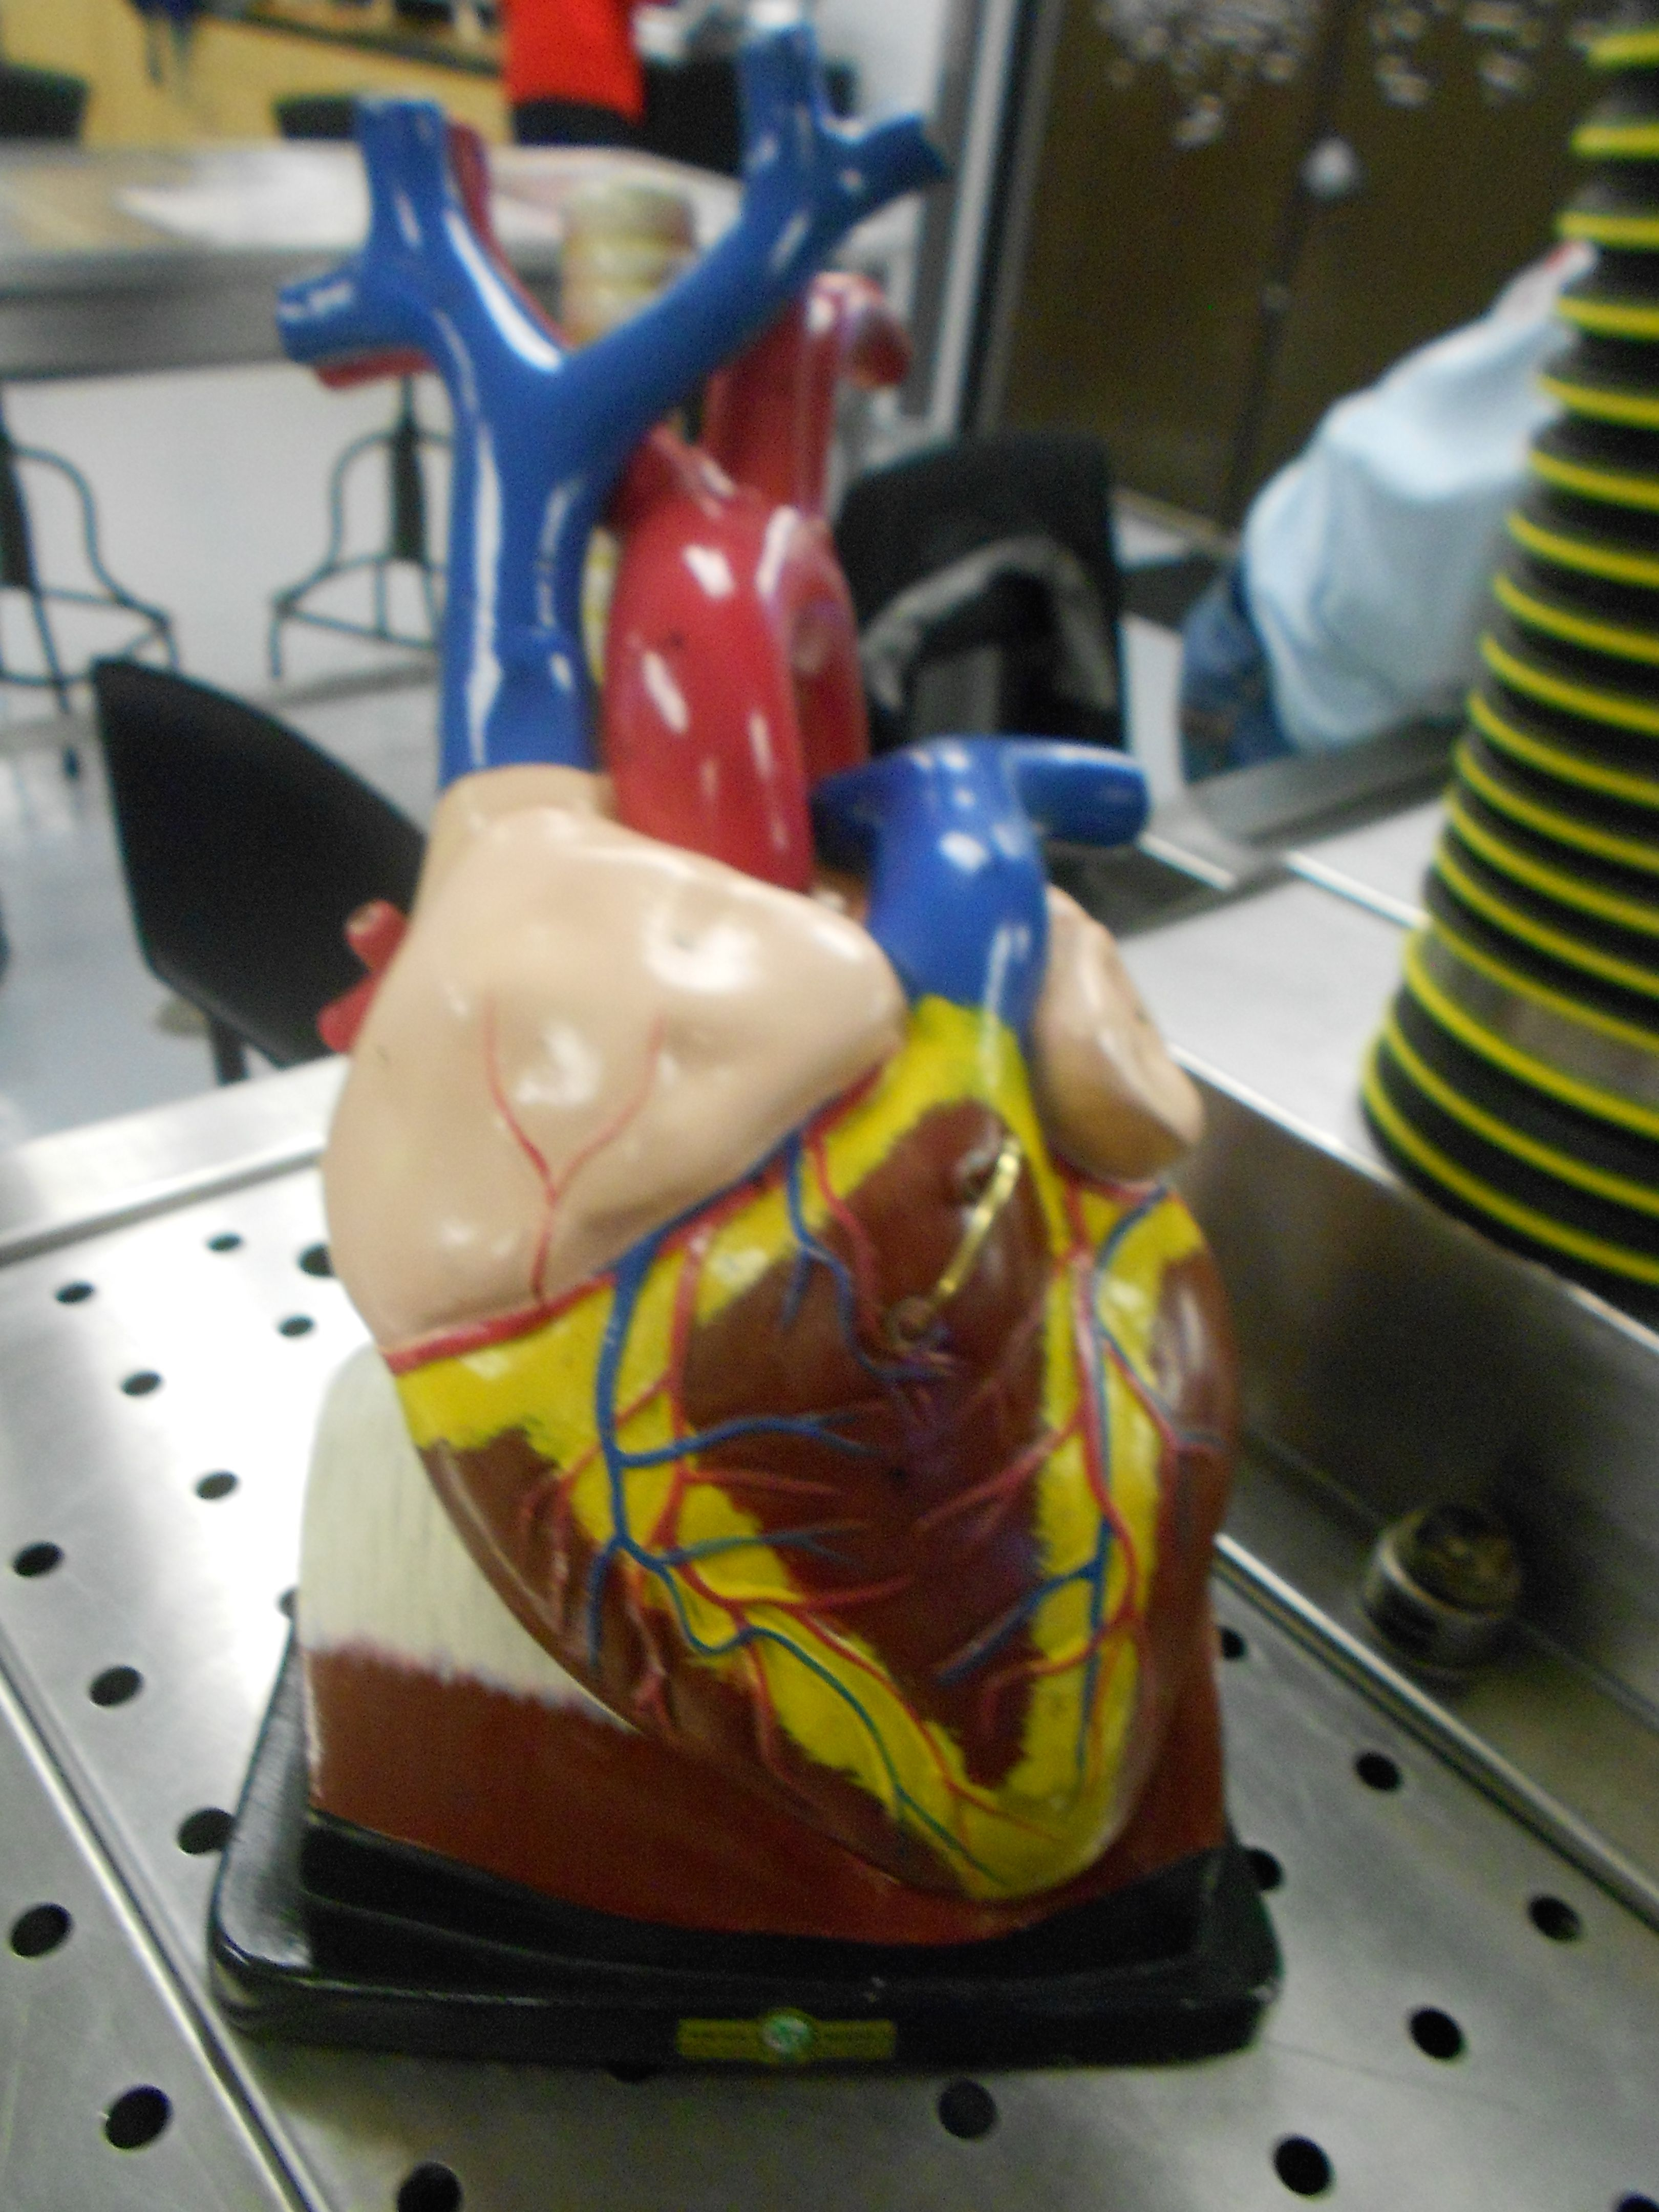 Heart model | Anatomy and physiology lab pics | Pinterest | Labs